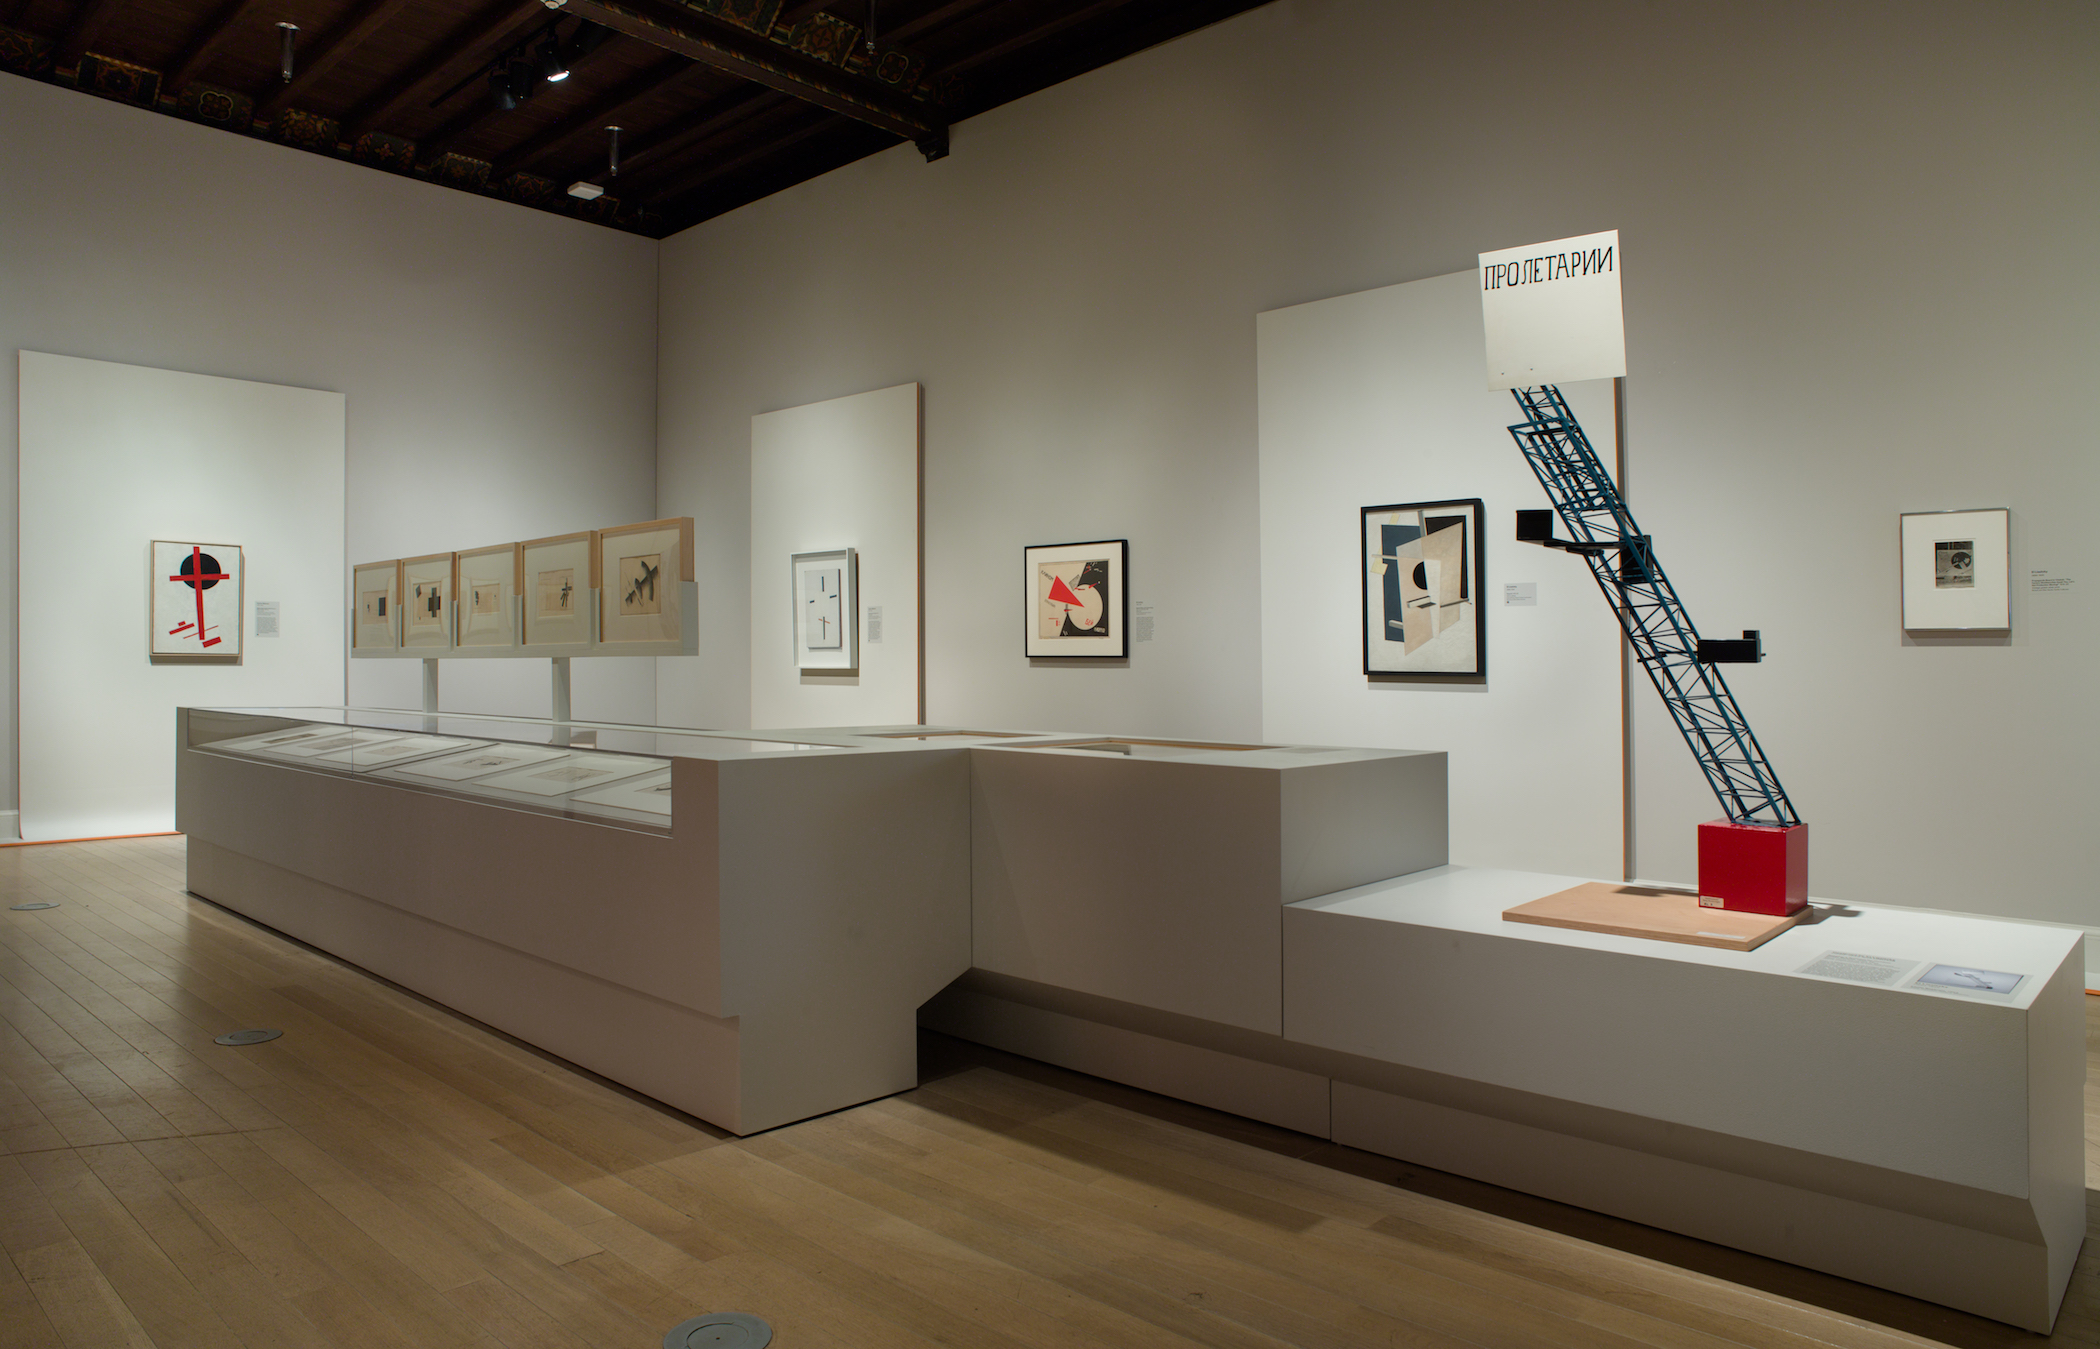 Installation view of the exhibition Chagall, Lissitzky, Malevich: The Russian Avant-Garde in Vitebsk, 1918-1922, September 14, 2018 – January 6, 2019, The Jewish Museum, NY. Photo by: Jason Mandella